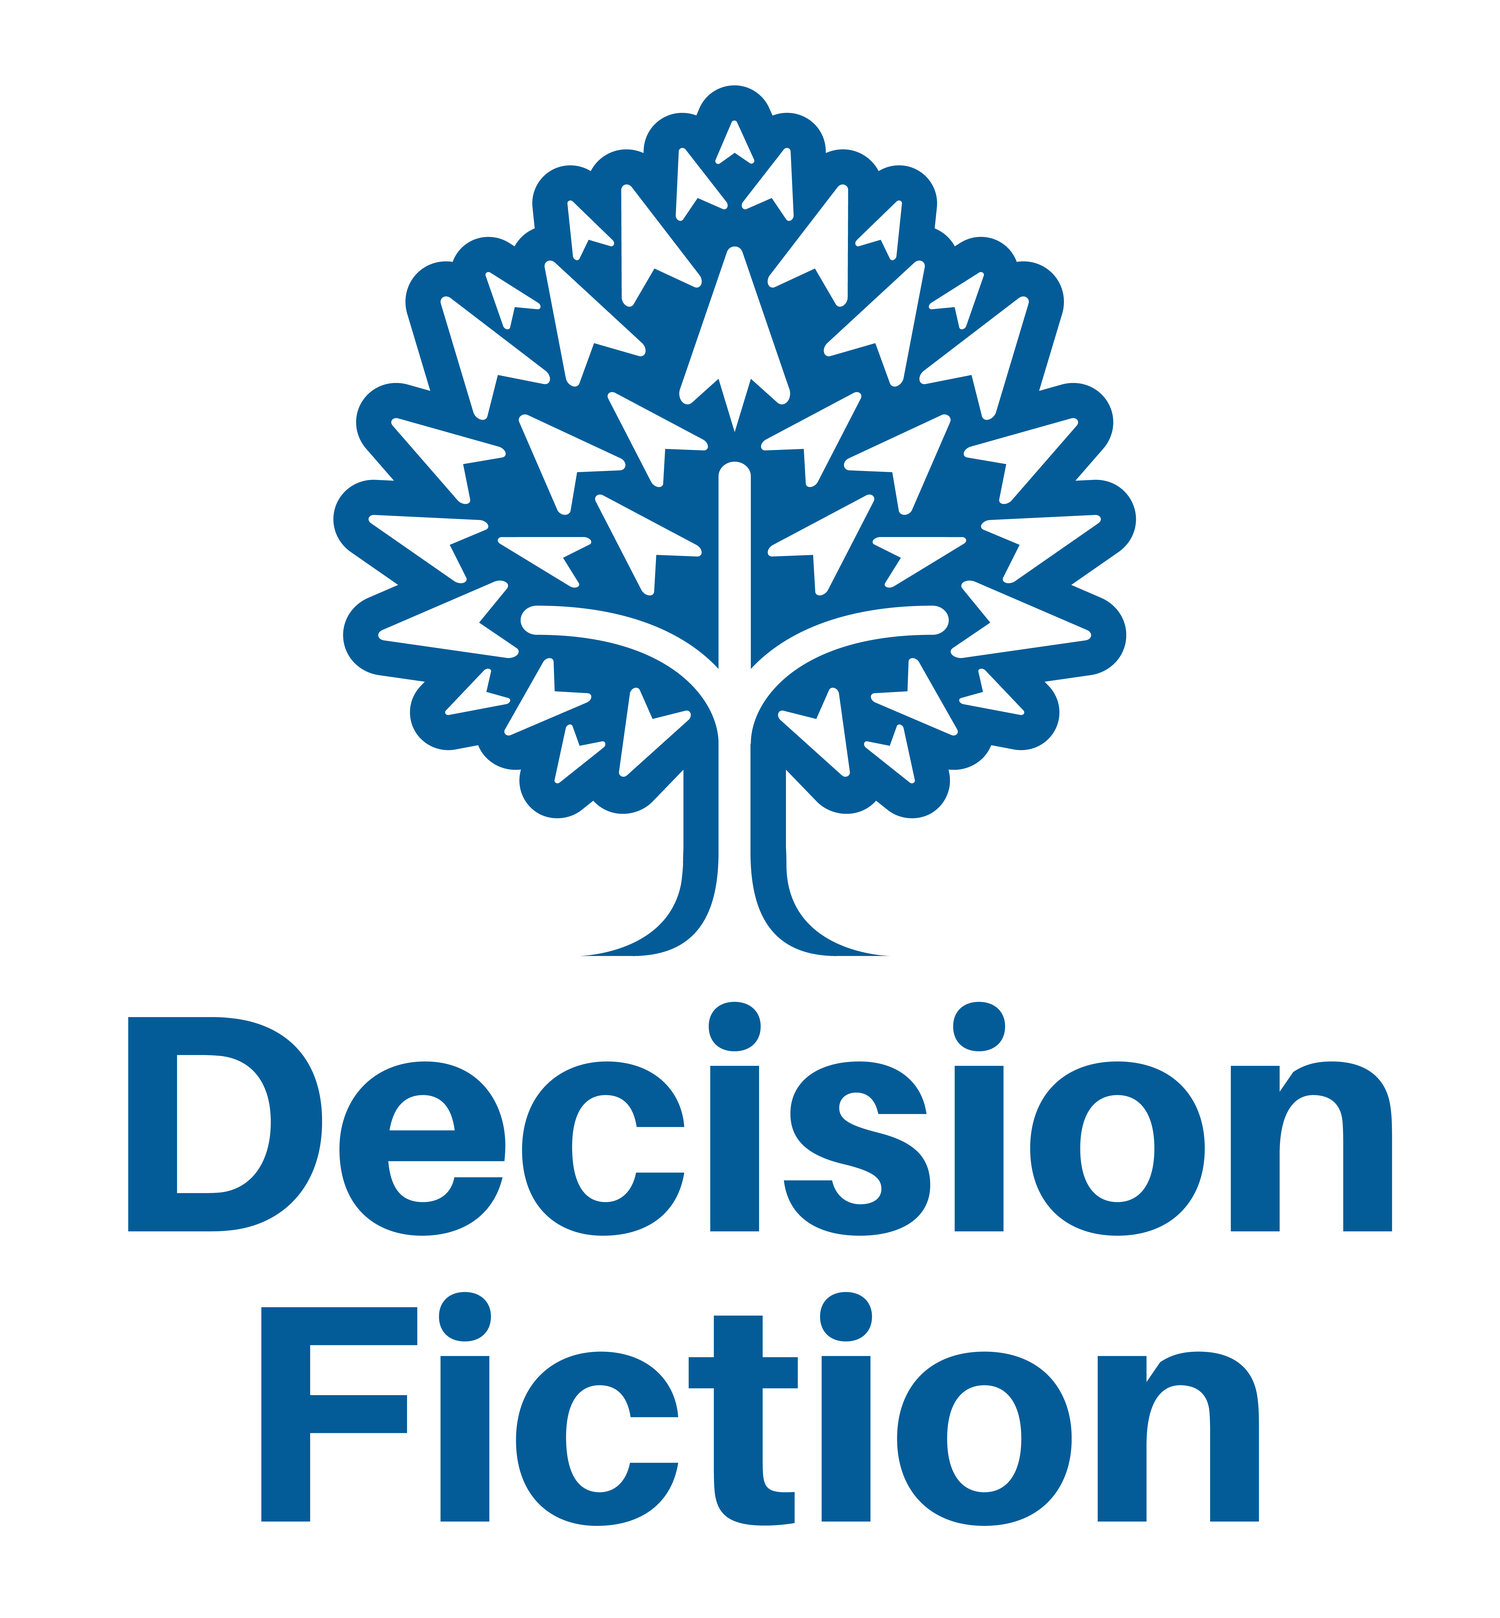 Decision Fiction